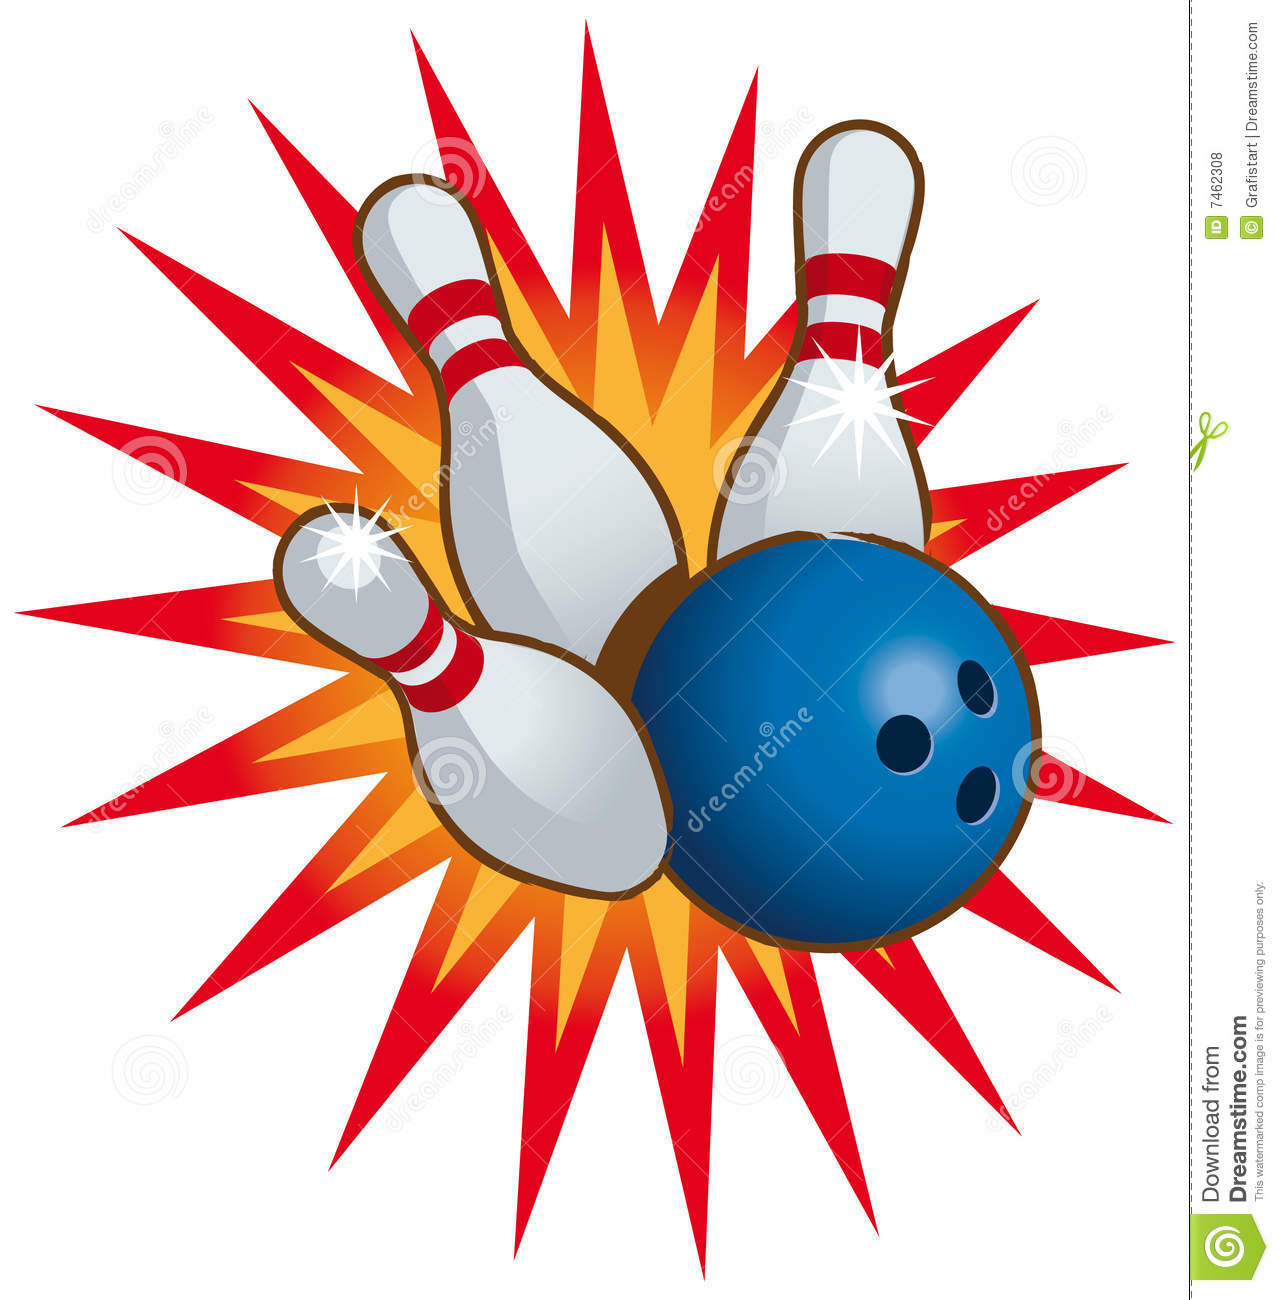 Bowling Ball And Pins Royalty Free Stock Photos - Image: 7462308